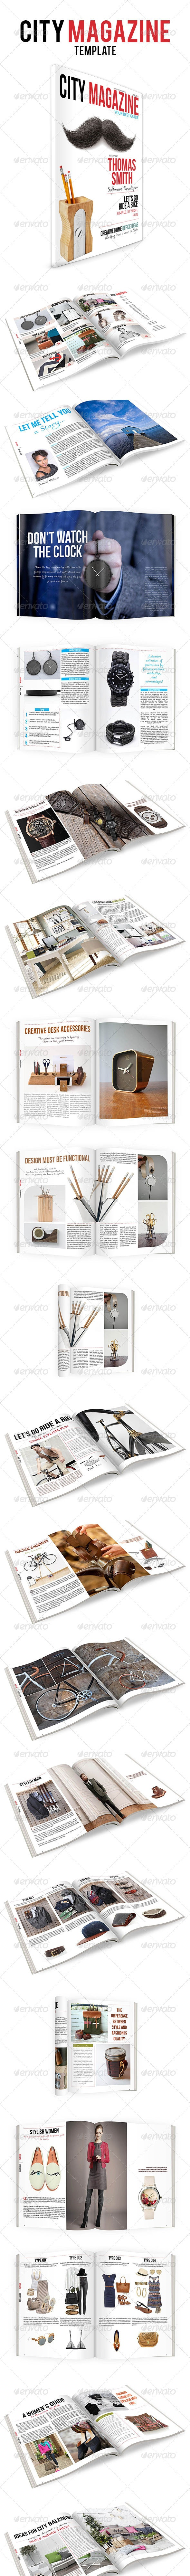 50 Pages City Magazine Template - Magazines Print Templates